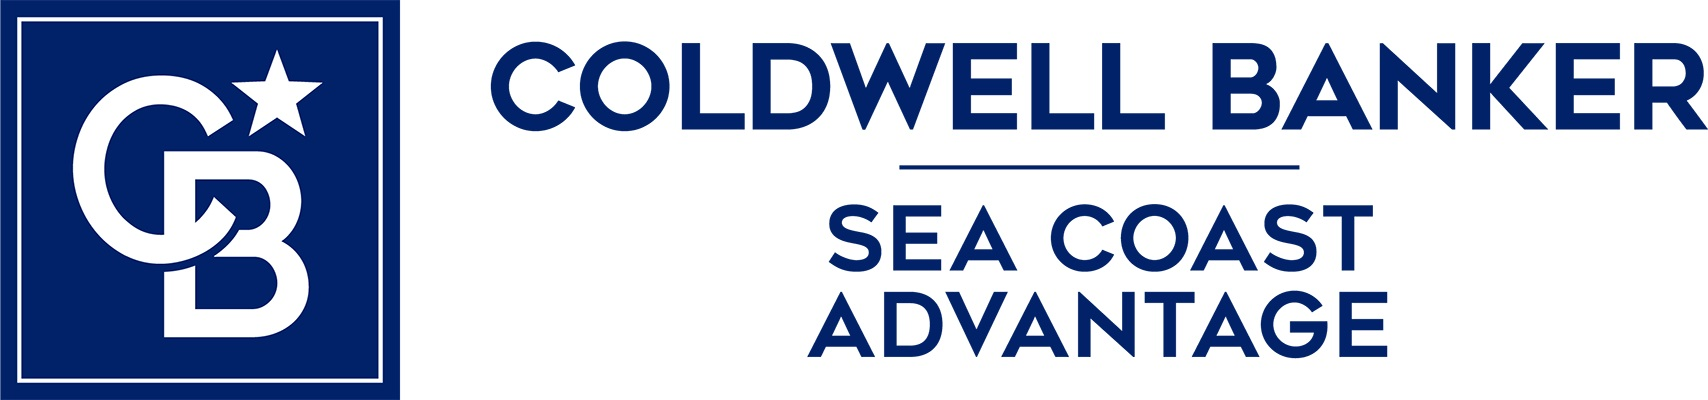 Karen Gaspar - Coldwell Banker Sea Coast Advantage Realty Logo